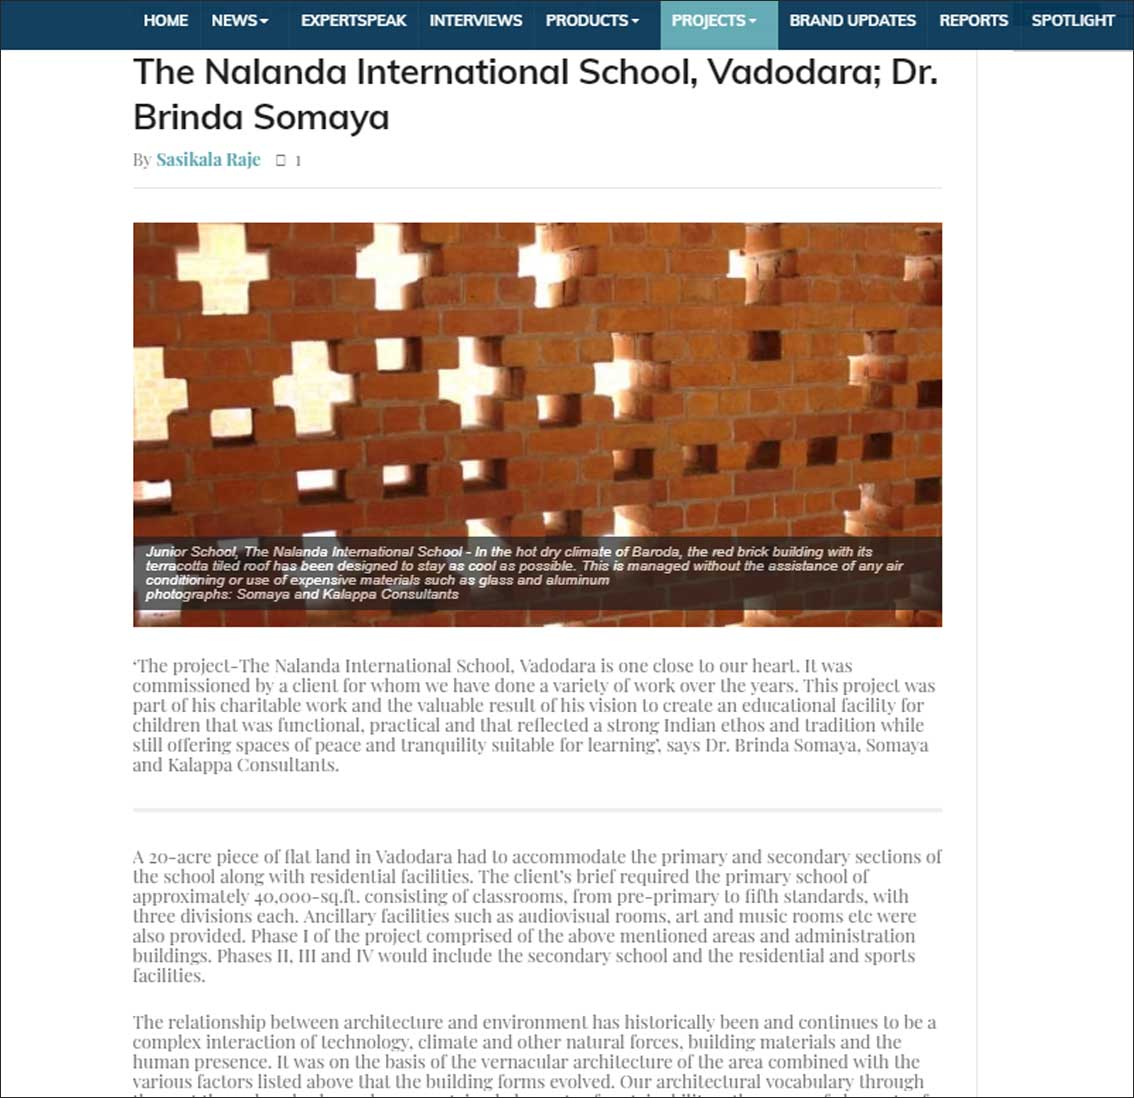 The Nalanda International School, Vadodara; Dr. Brinda Somaya